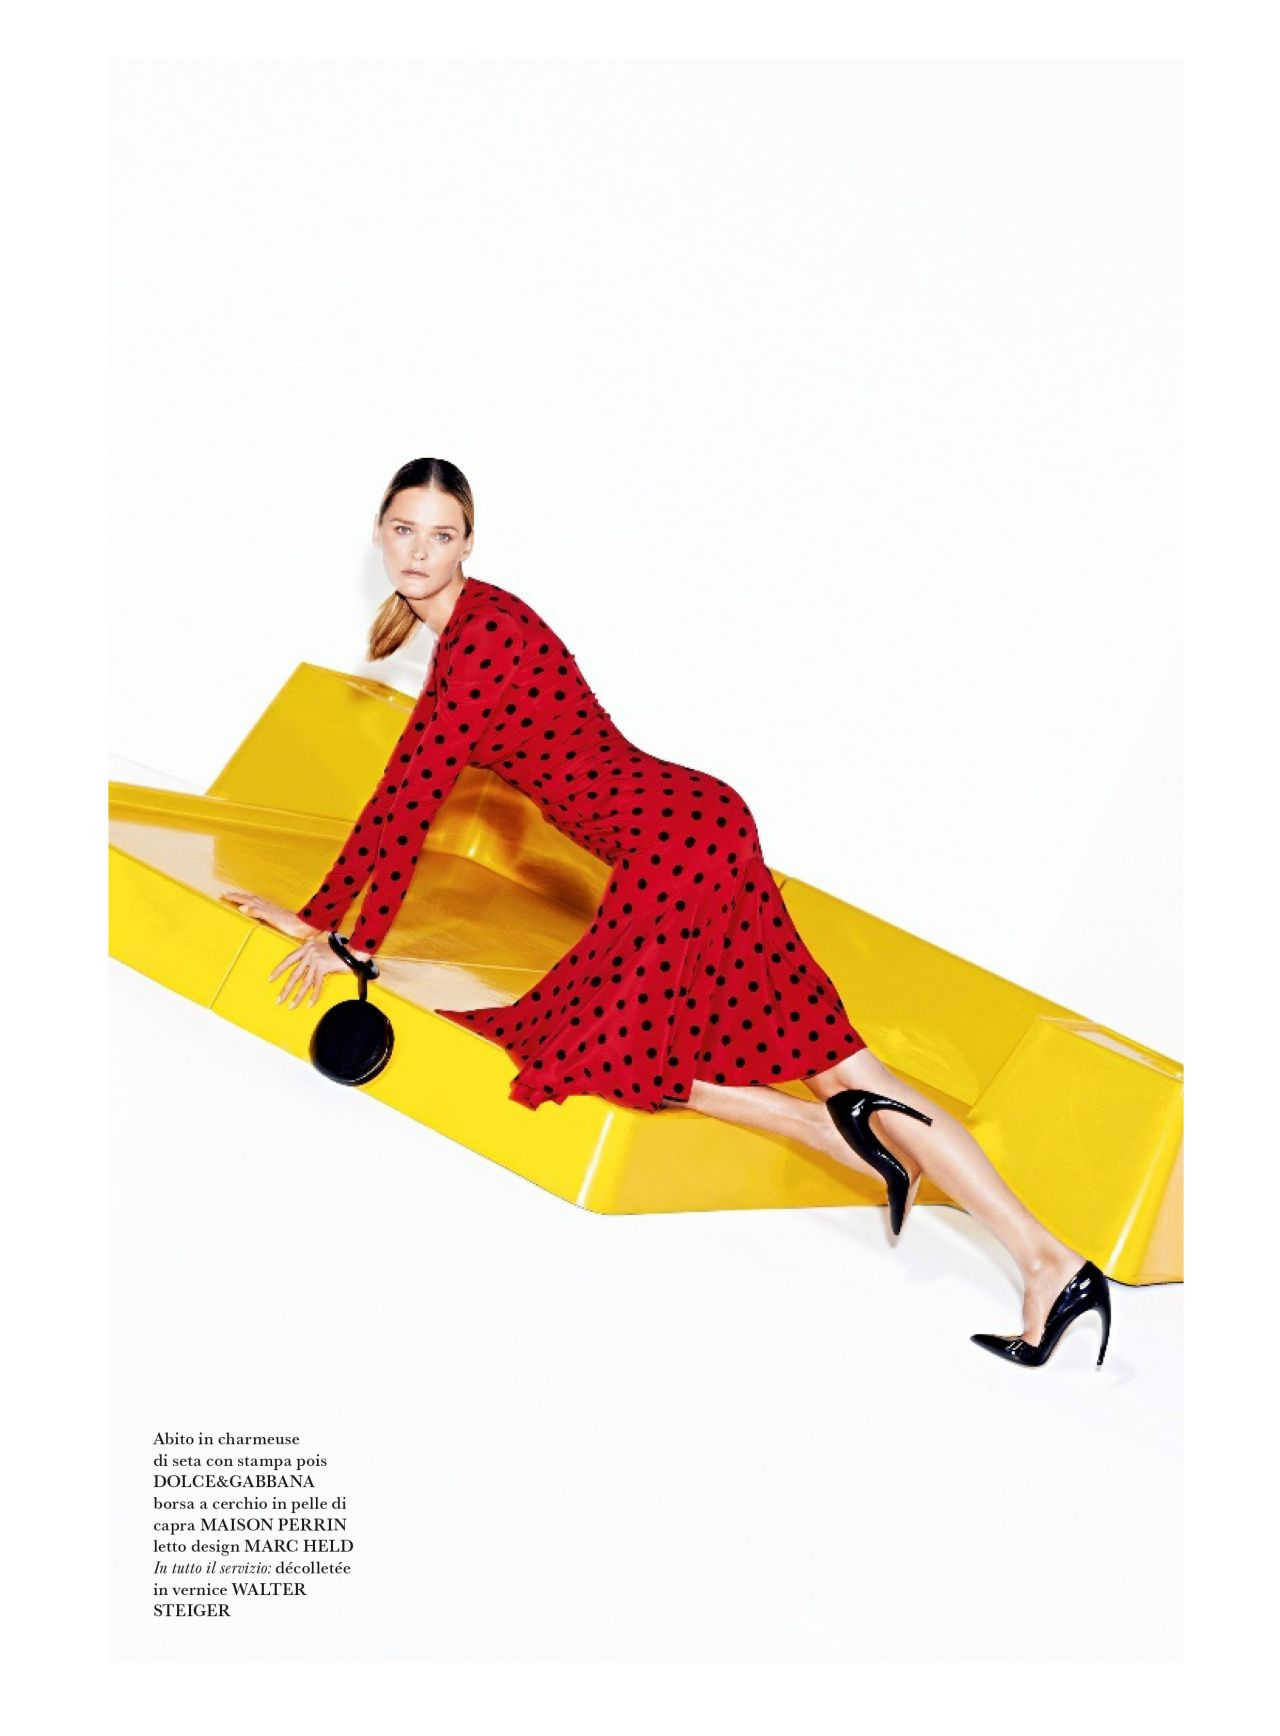 Carmen Kass - Flair #9 Magazine -  March 2014 Issue